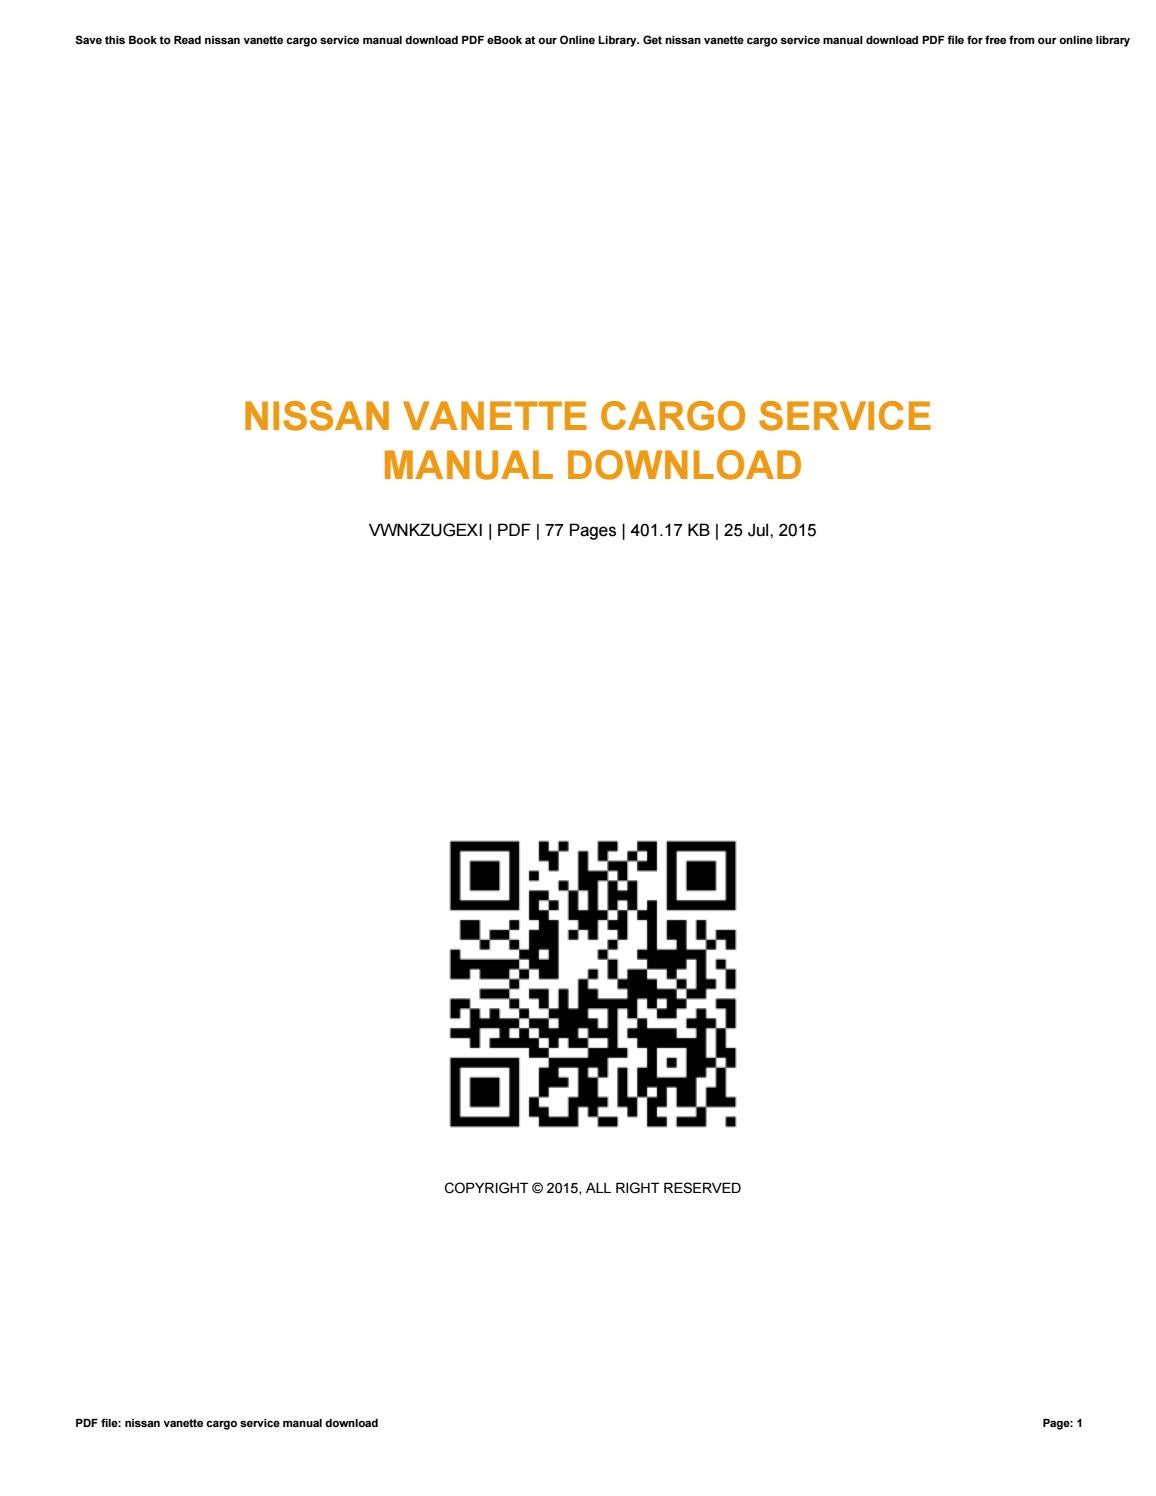 Nissan vanette cargo service manual download by ppetw117